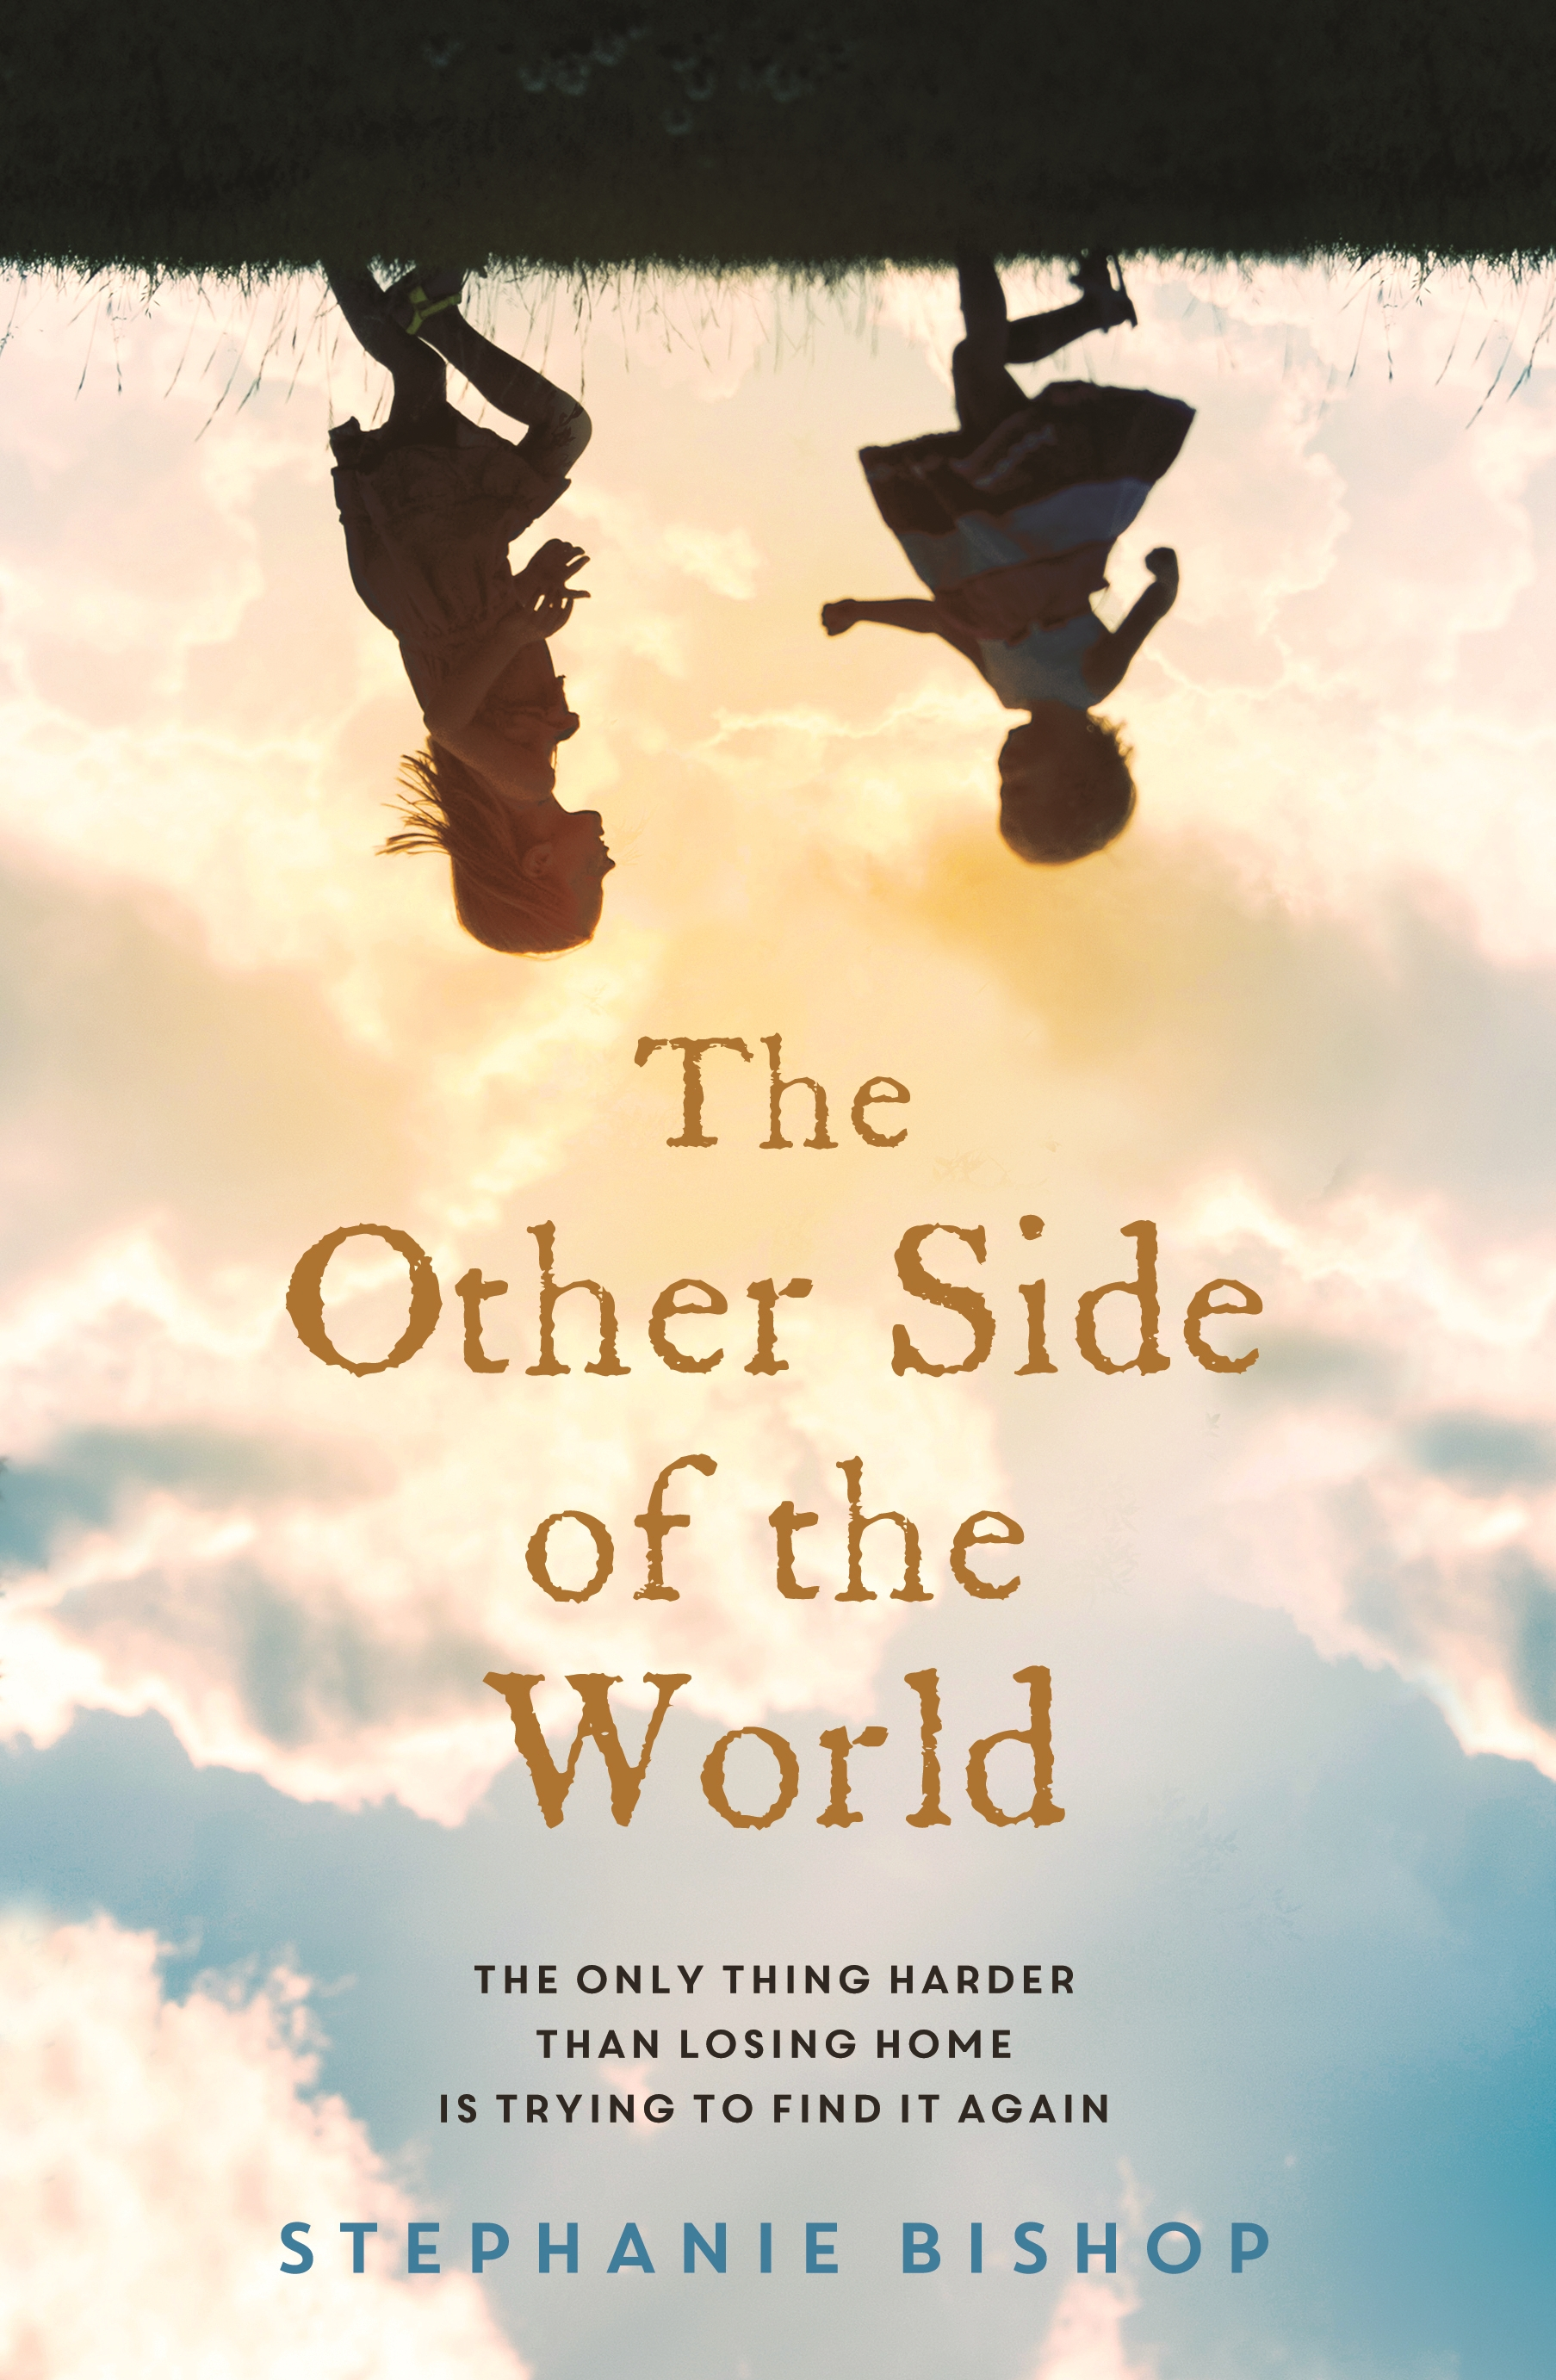 The Other Side of the World - Stephanie Bishop